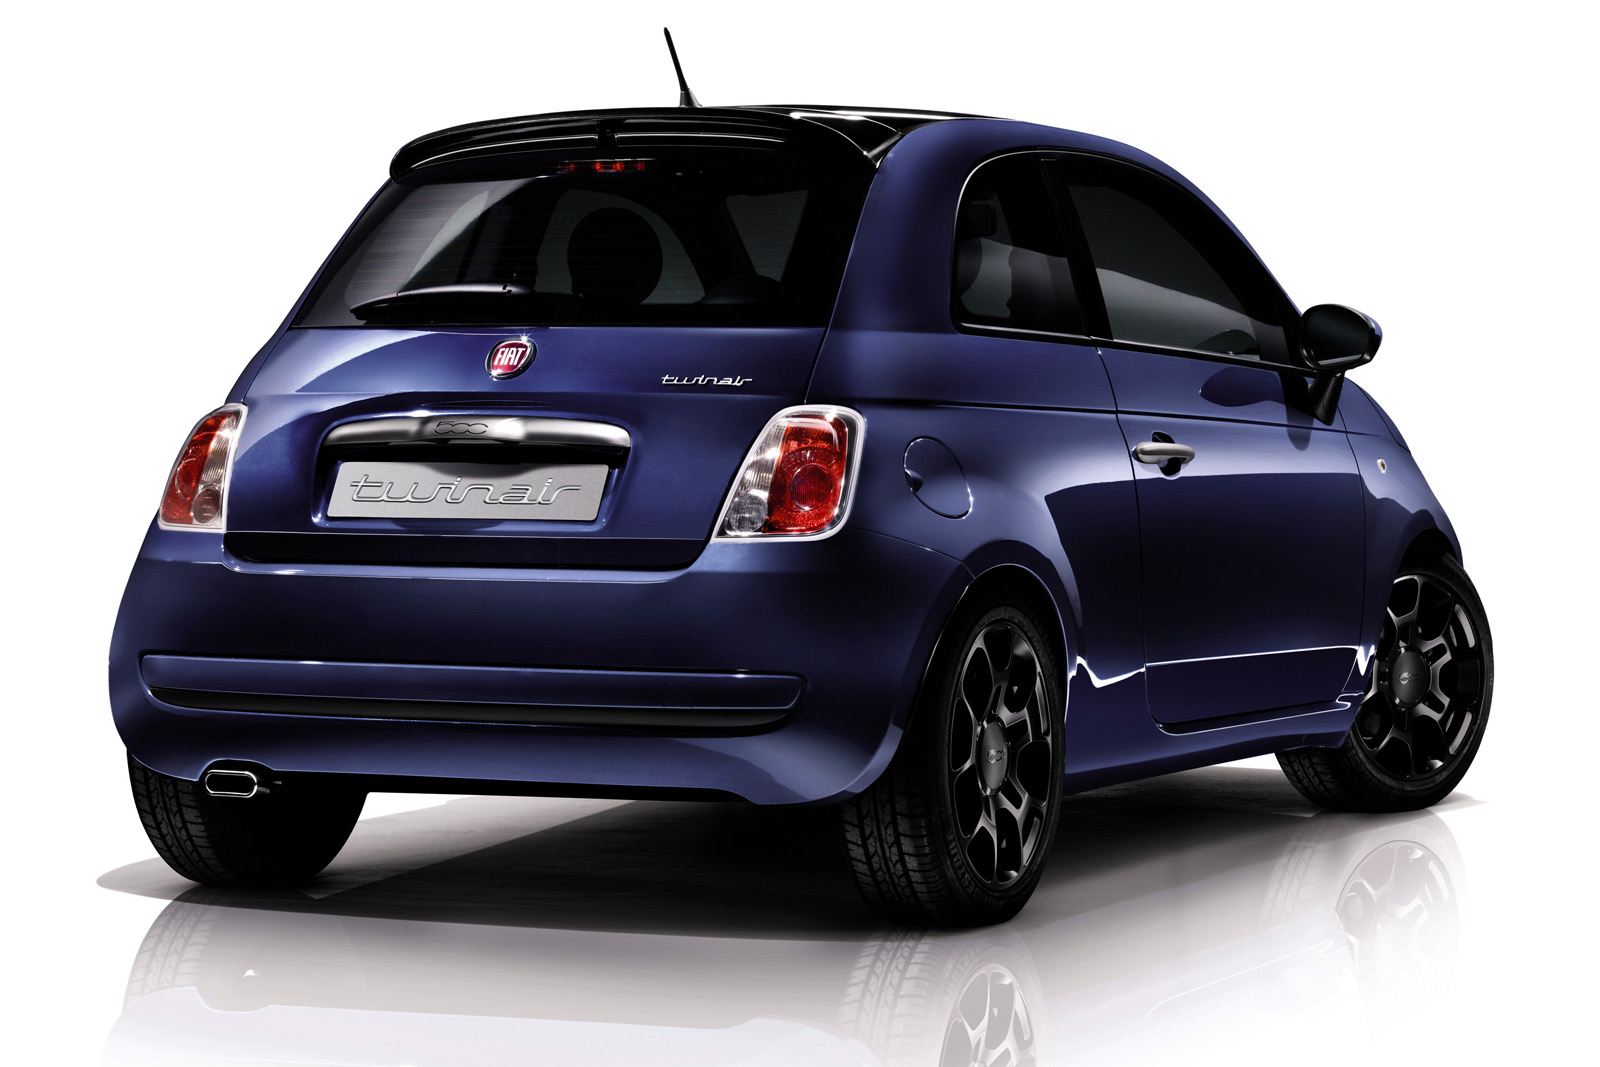 Fiat 500C TwinAir 2 500 Twin Air Variant  More Energy Efficient and Fuel Economic